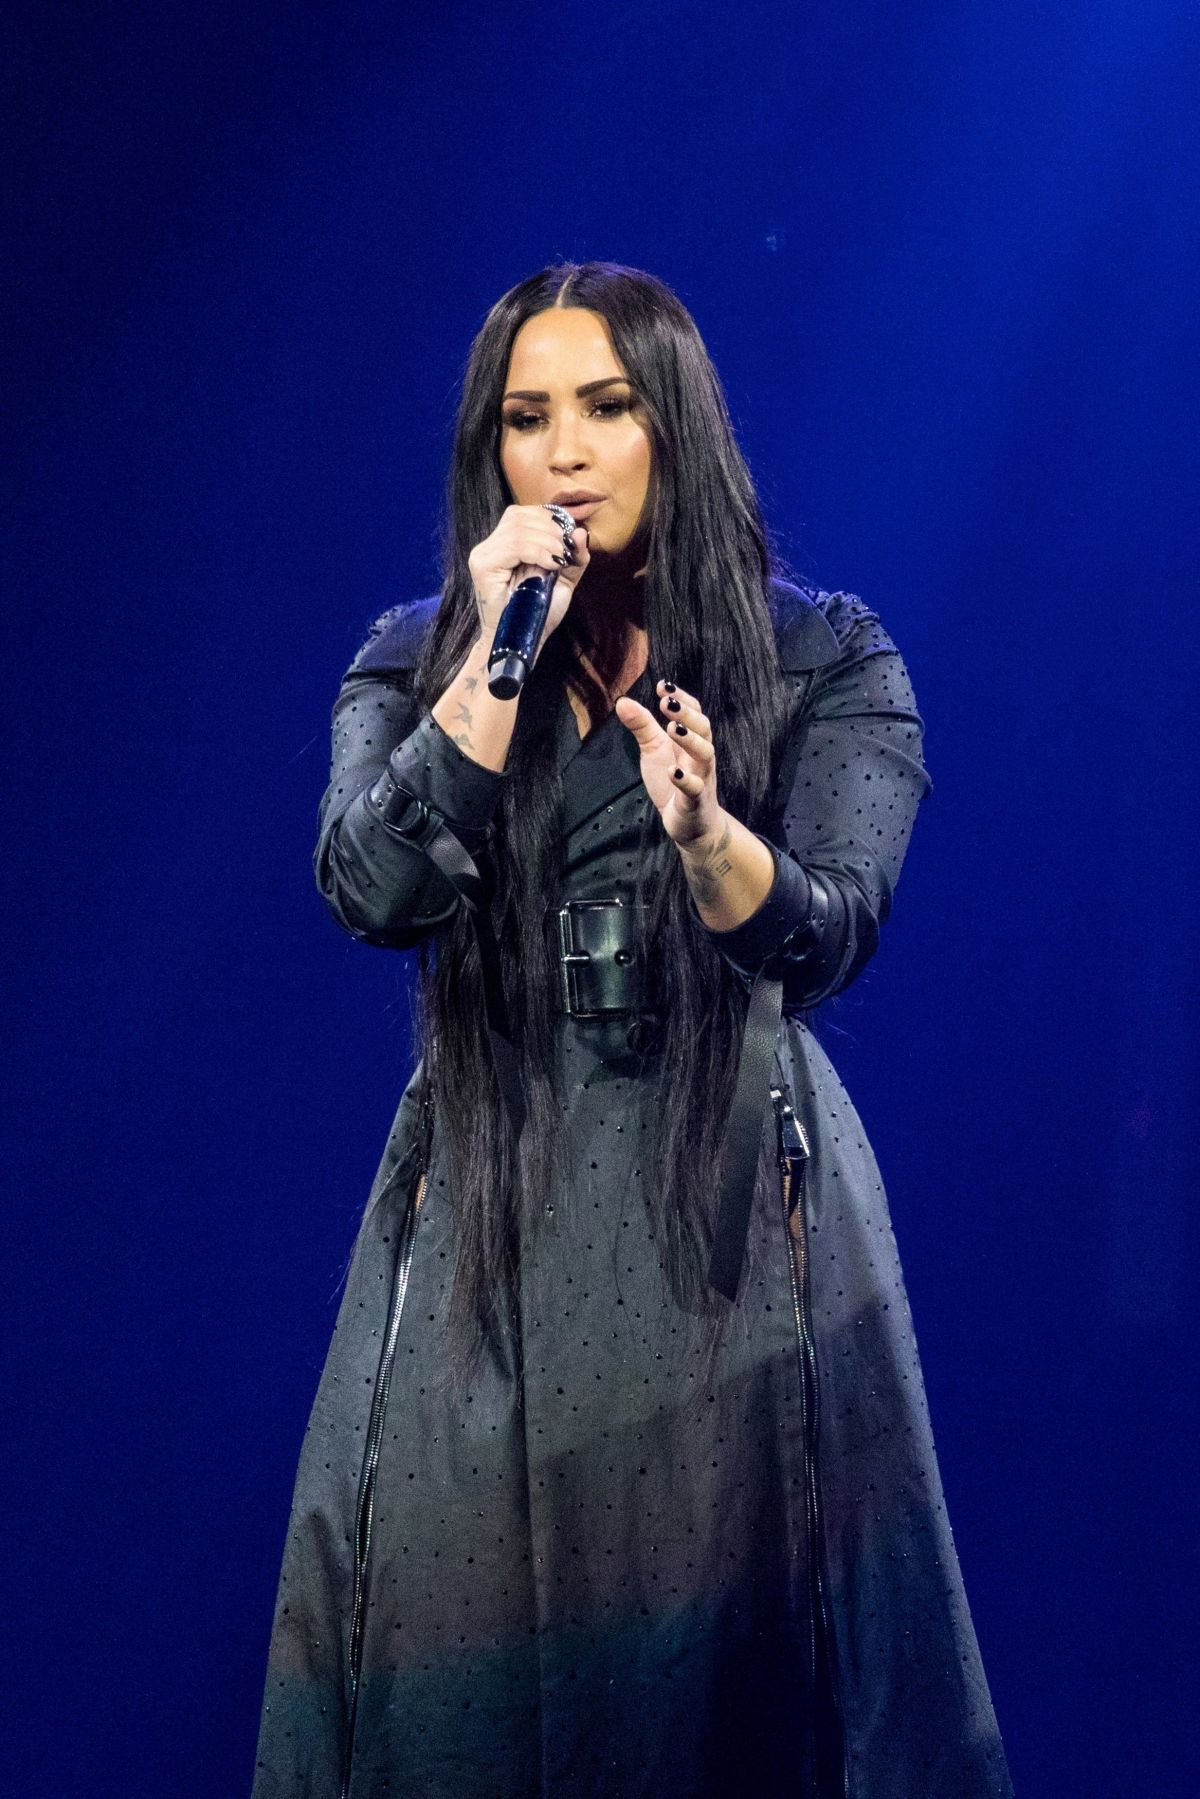 Demi Lovato At Tell Me You Love Me Tour At The Target Center On In Minneapolis Celebzz Celebzz